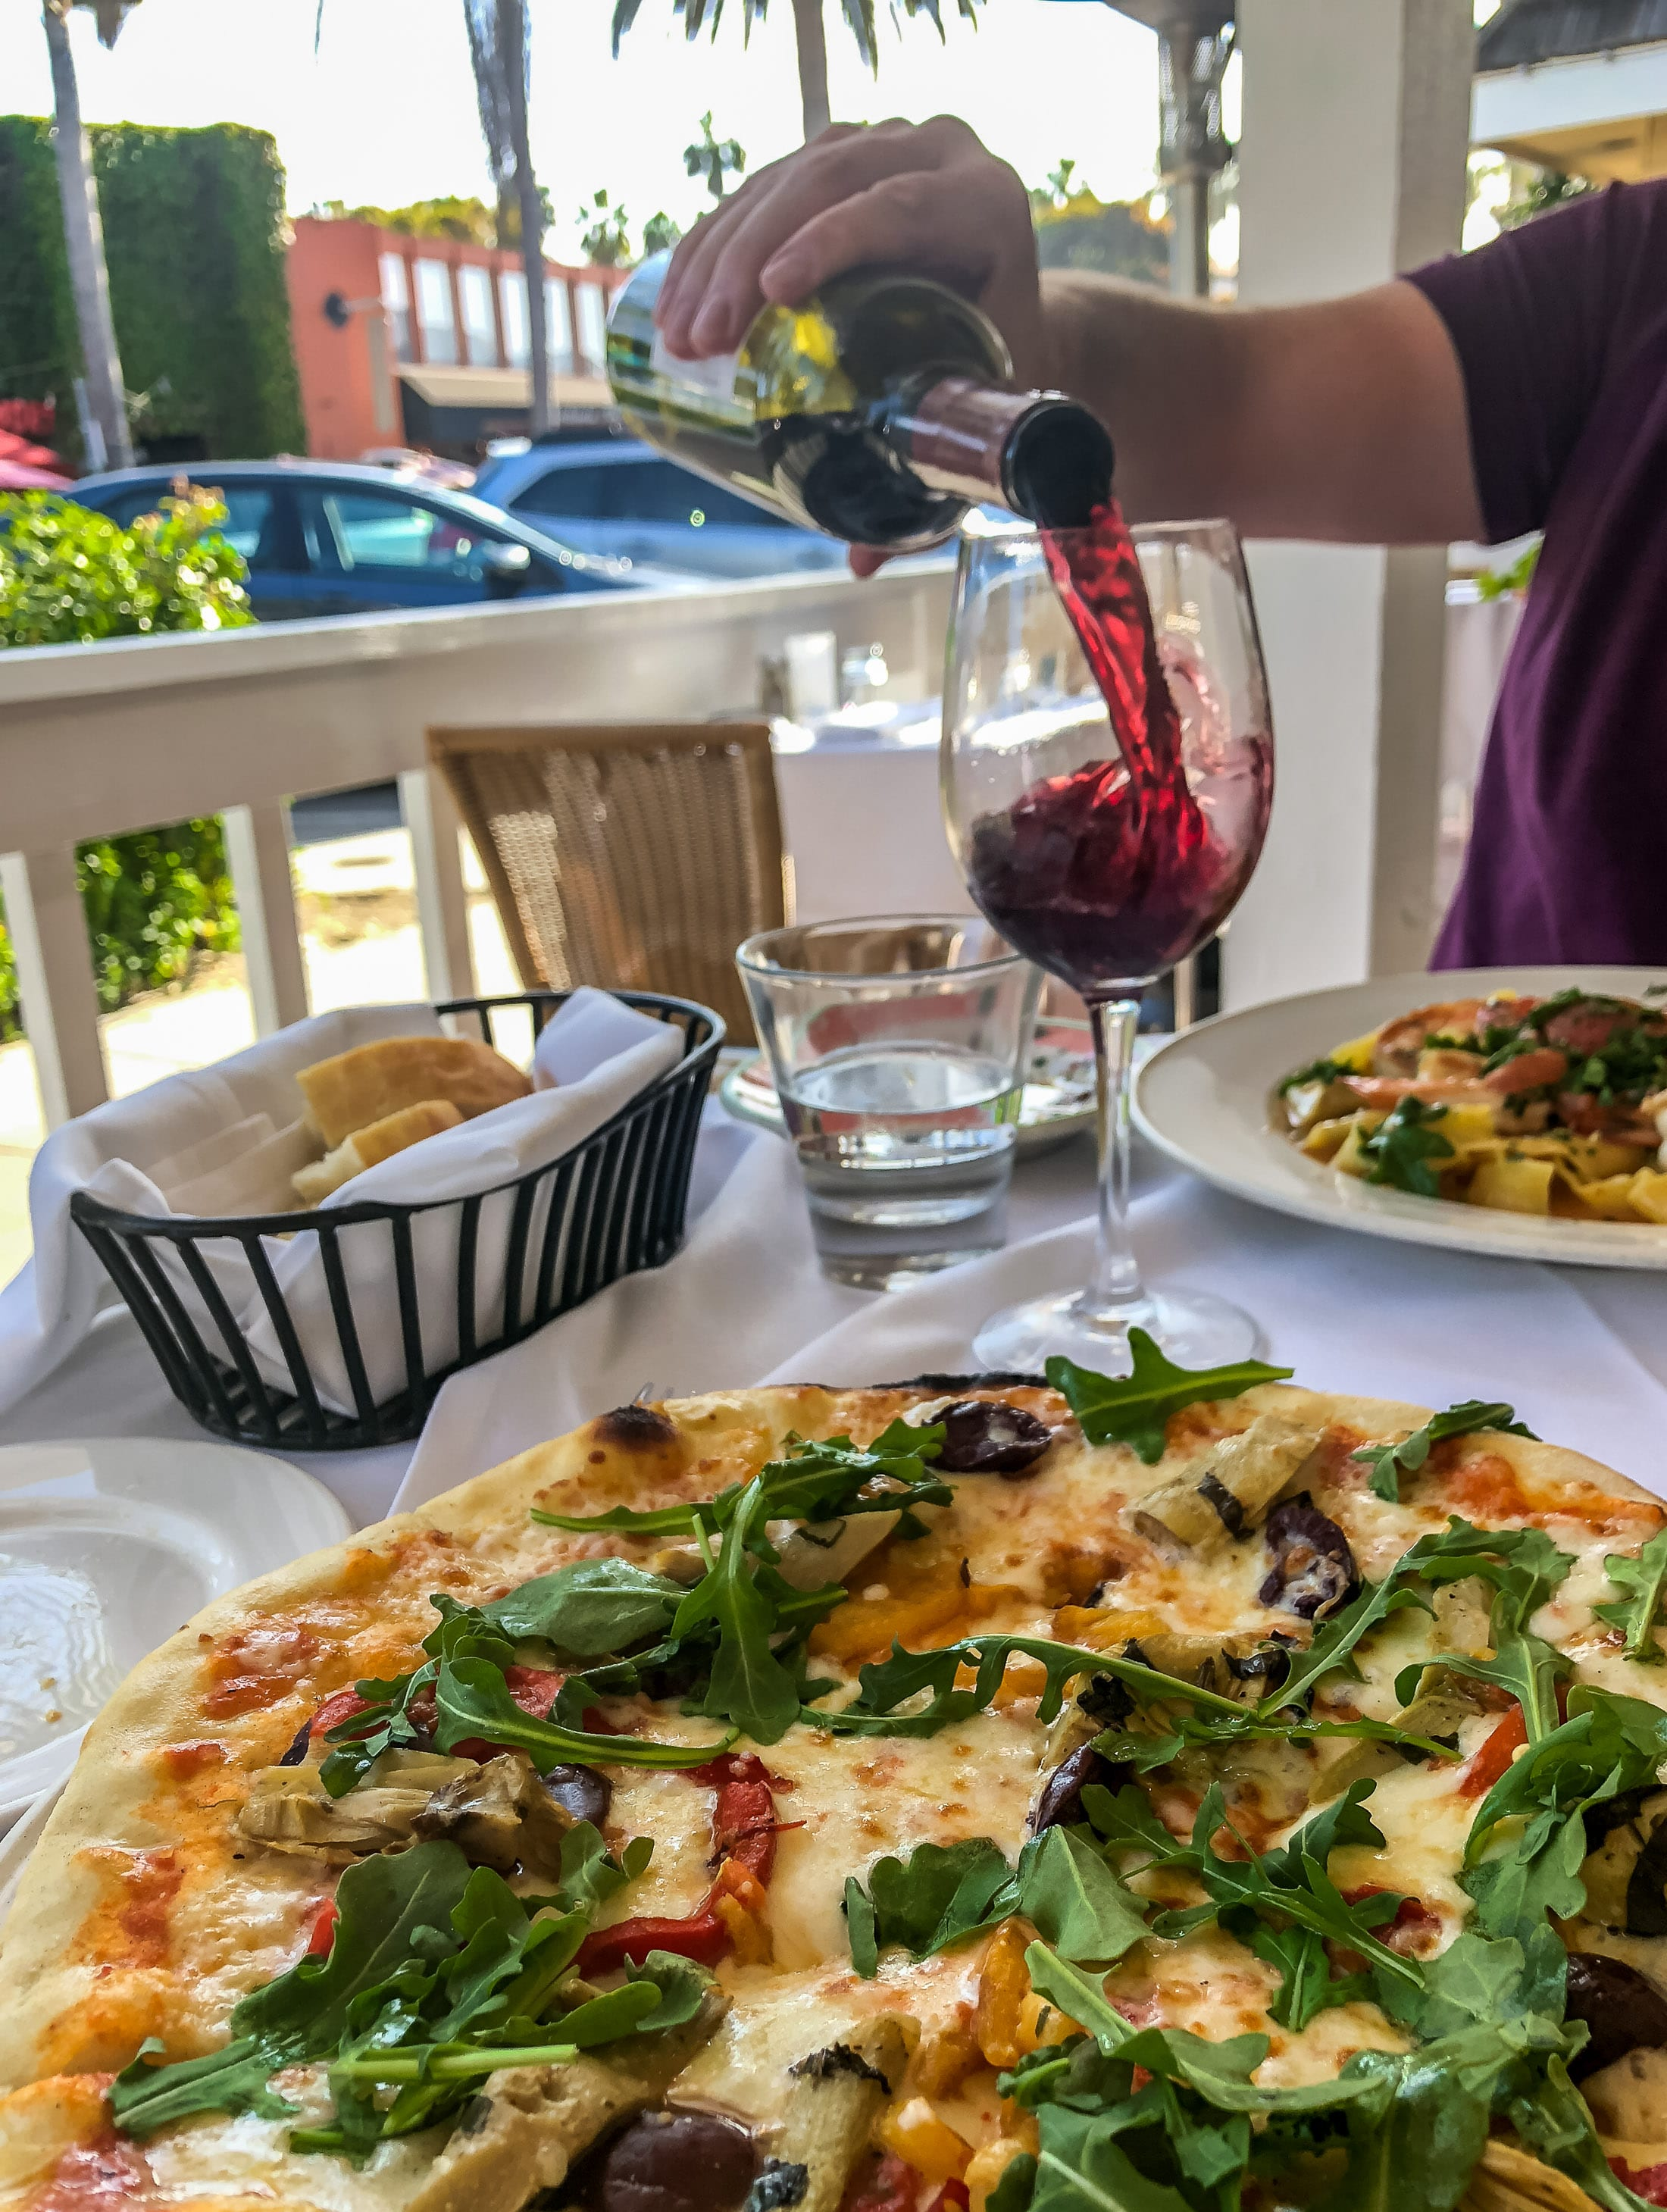 Piatti La Jolla: One of San Diego's best restaurants